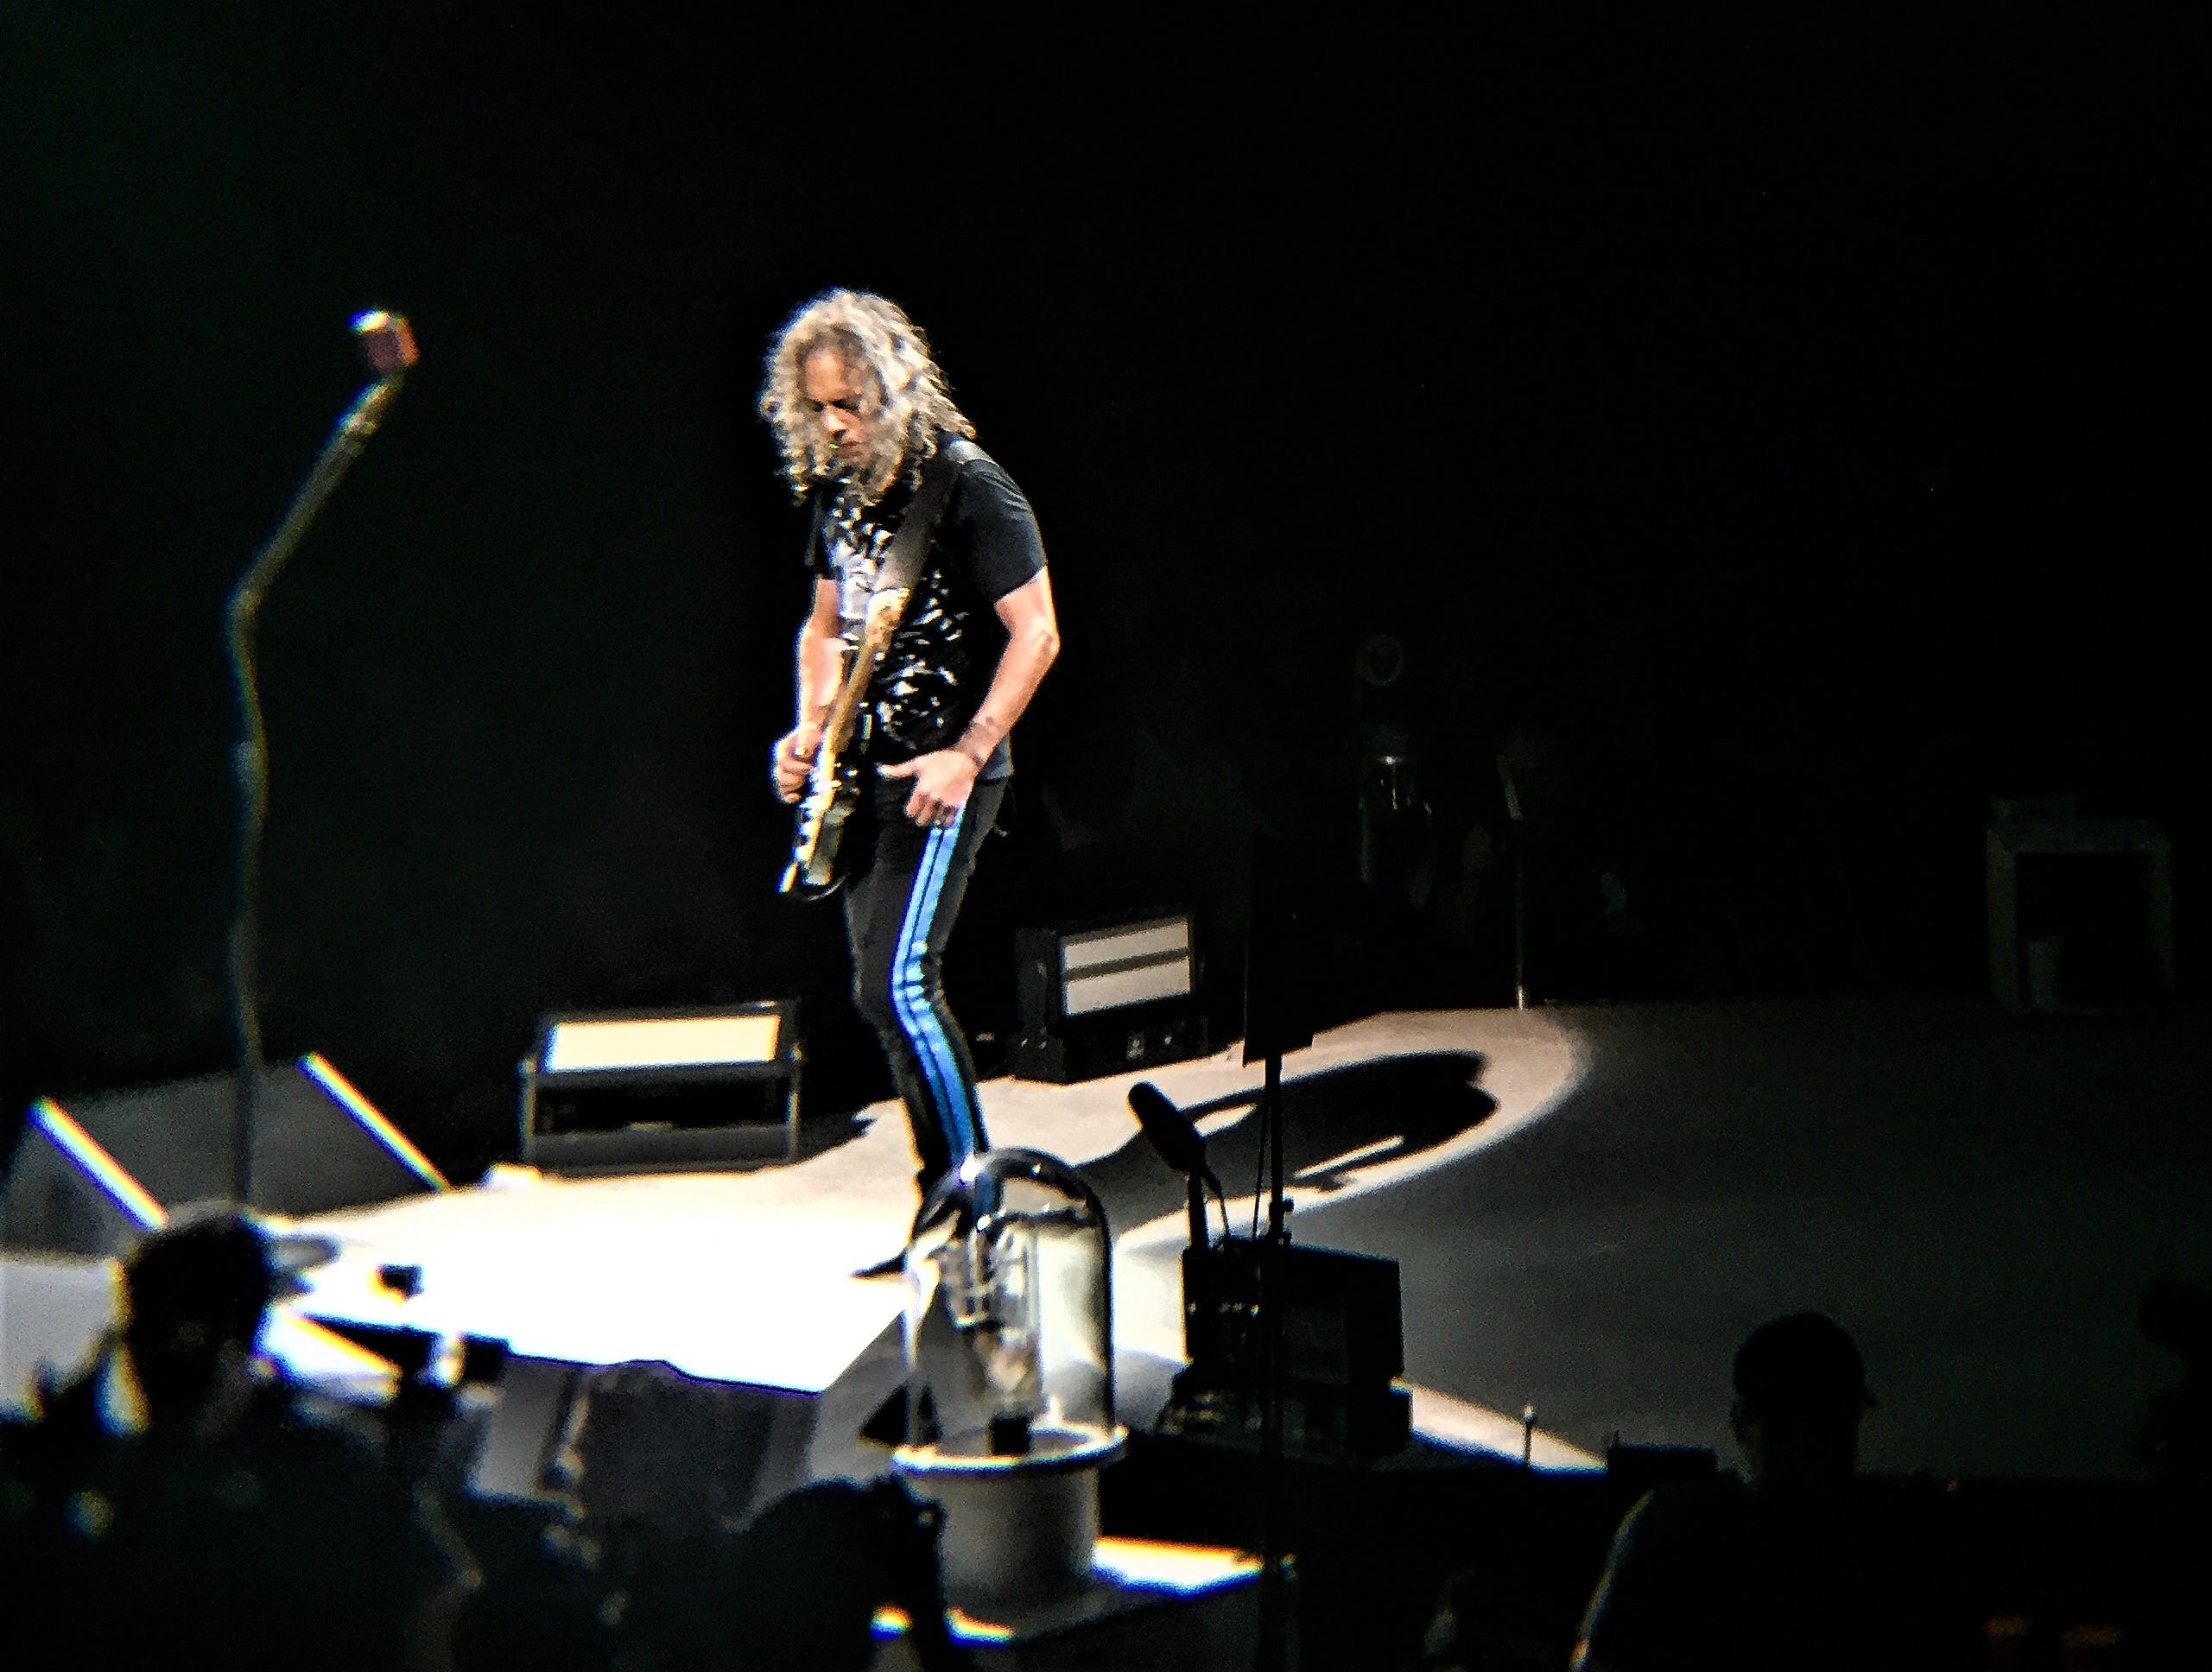 Lead guitarist Kirk Hammett at the Metallica concert Thursday, Feb. 28, 2019, at the Don Haskins Center.